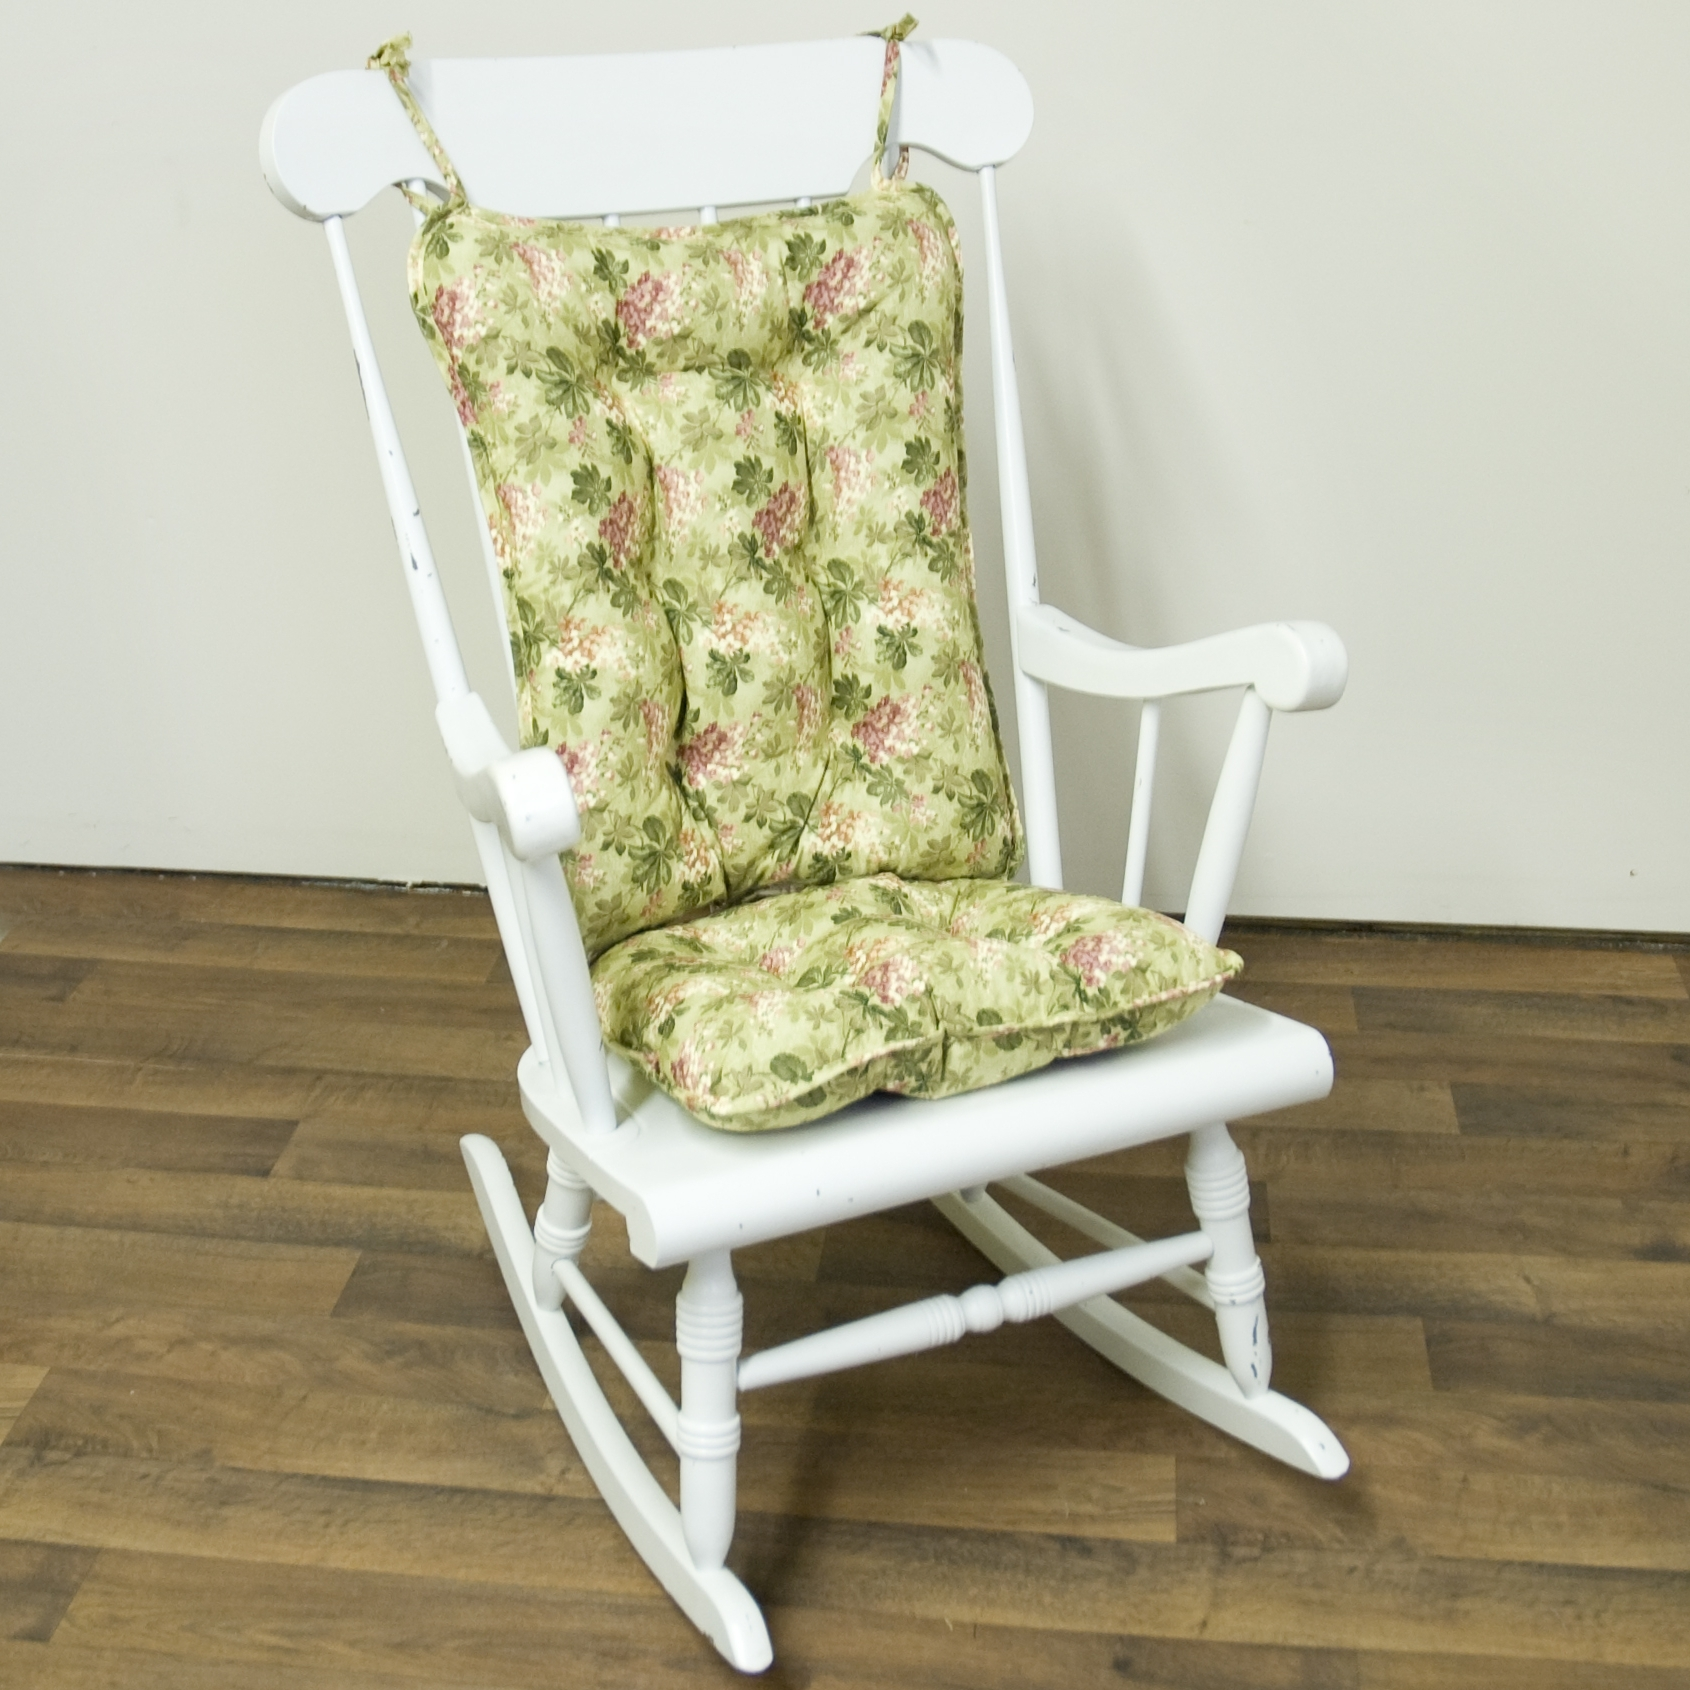 Outdoor Rocking Chair Cushions Flower : Beautiful Outdoor Rocking With Most Up To Date Outdoor Rocking Chairs With Cushions (View 19 of 20)